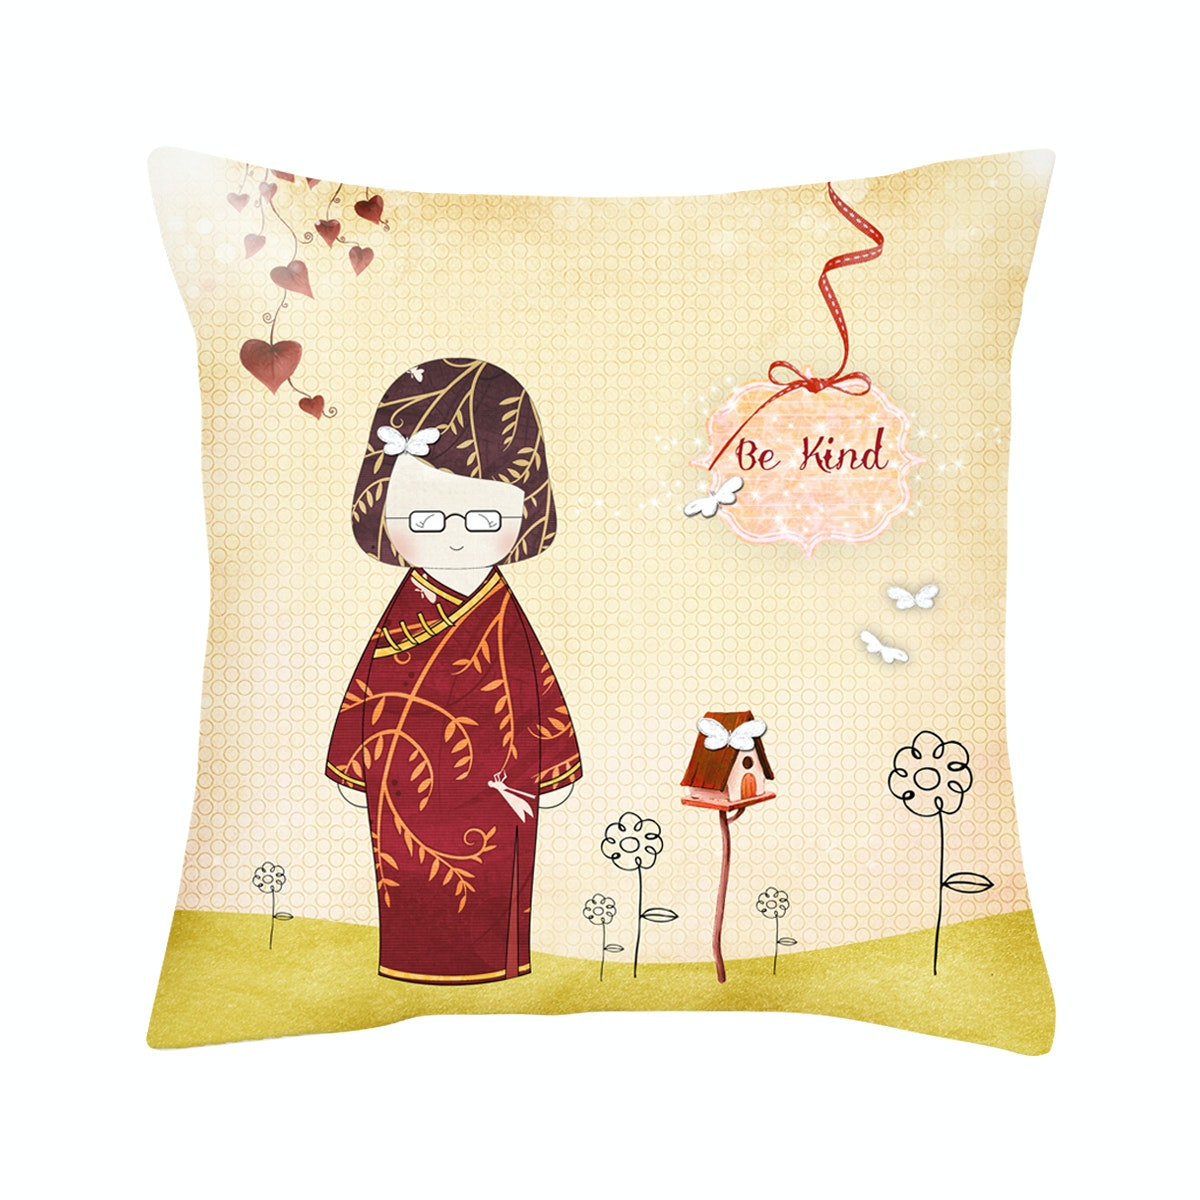 Rumah Odelle Be Kind Cushion Cover 40cmx40cm (Cover)